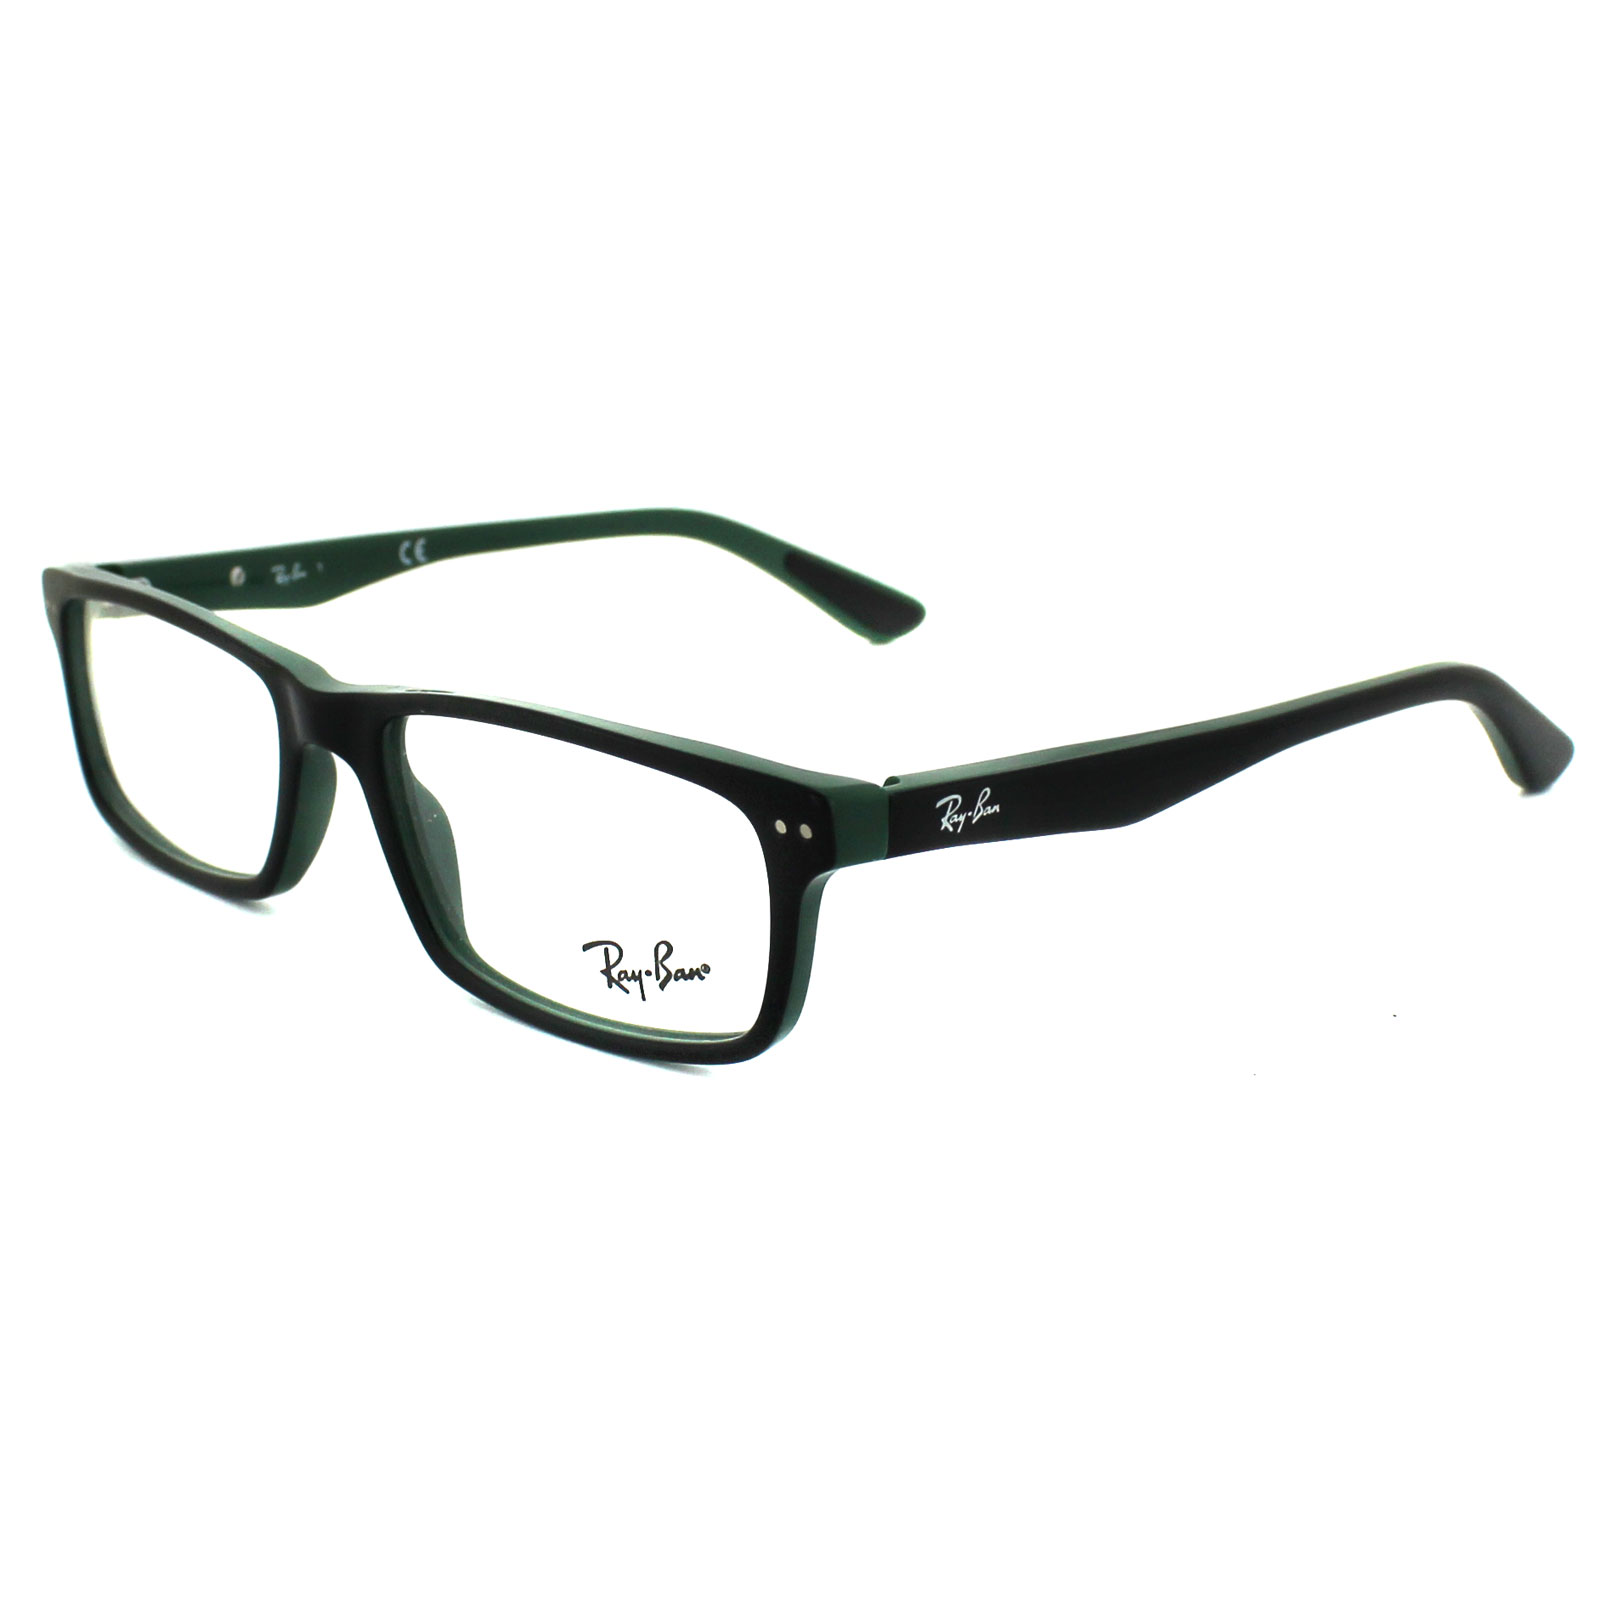 Green Frame Ray Ban Glasses : Ray-Ban Glasses Frames 5277 5138 Top Black On Green eBay